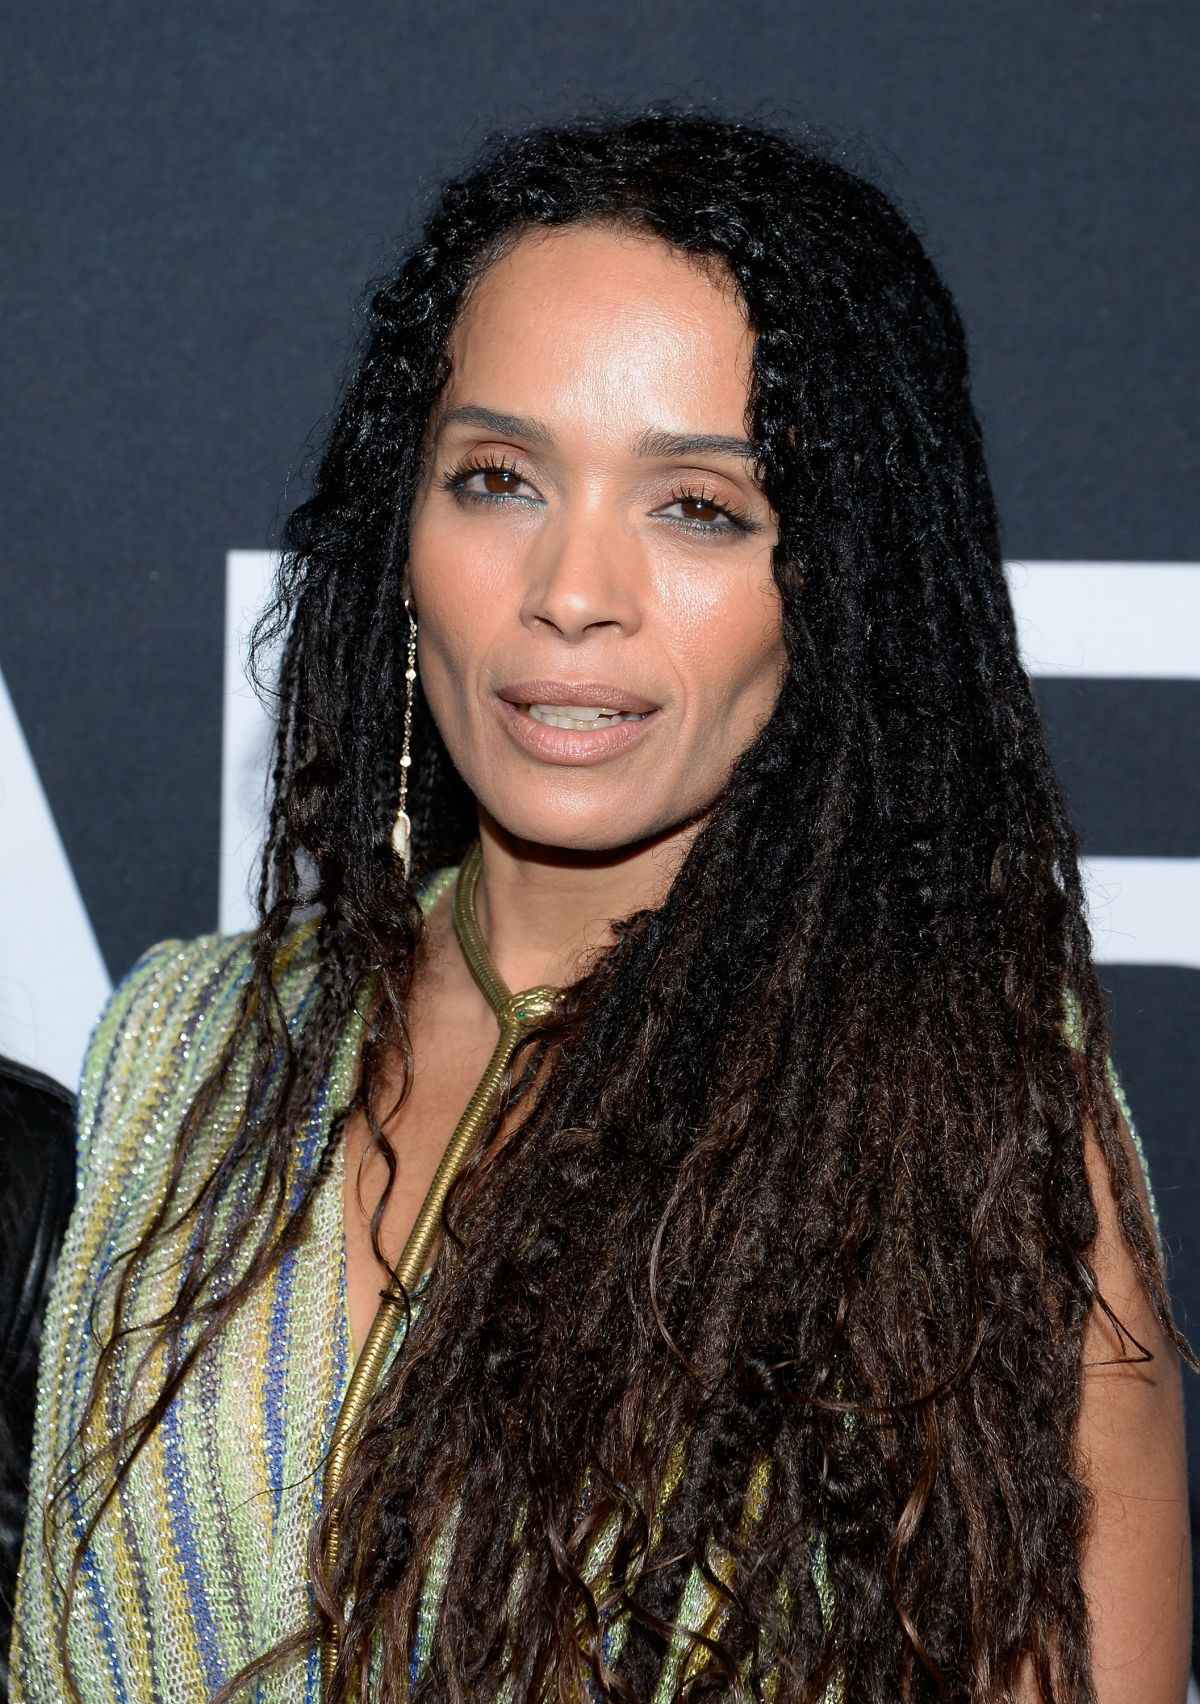 Lisa Bonet earned a  million dollar salary - leaving the net worth at 10 million in 2018